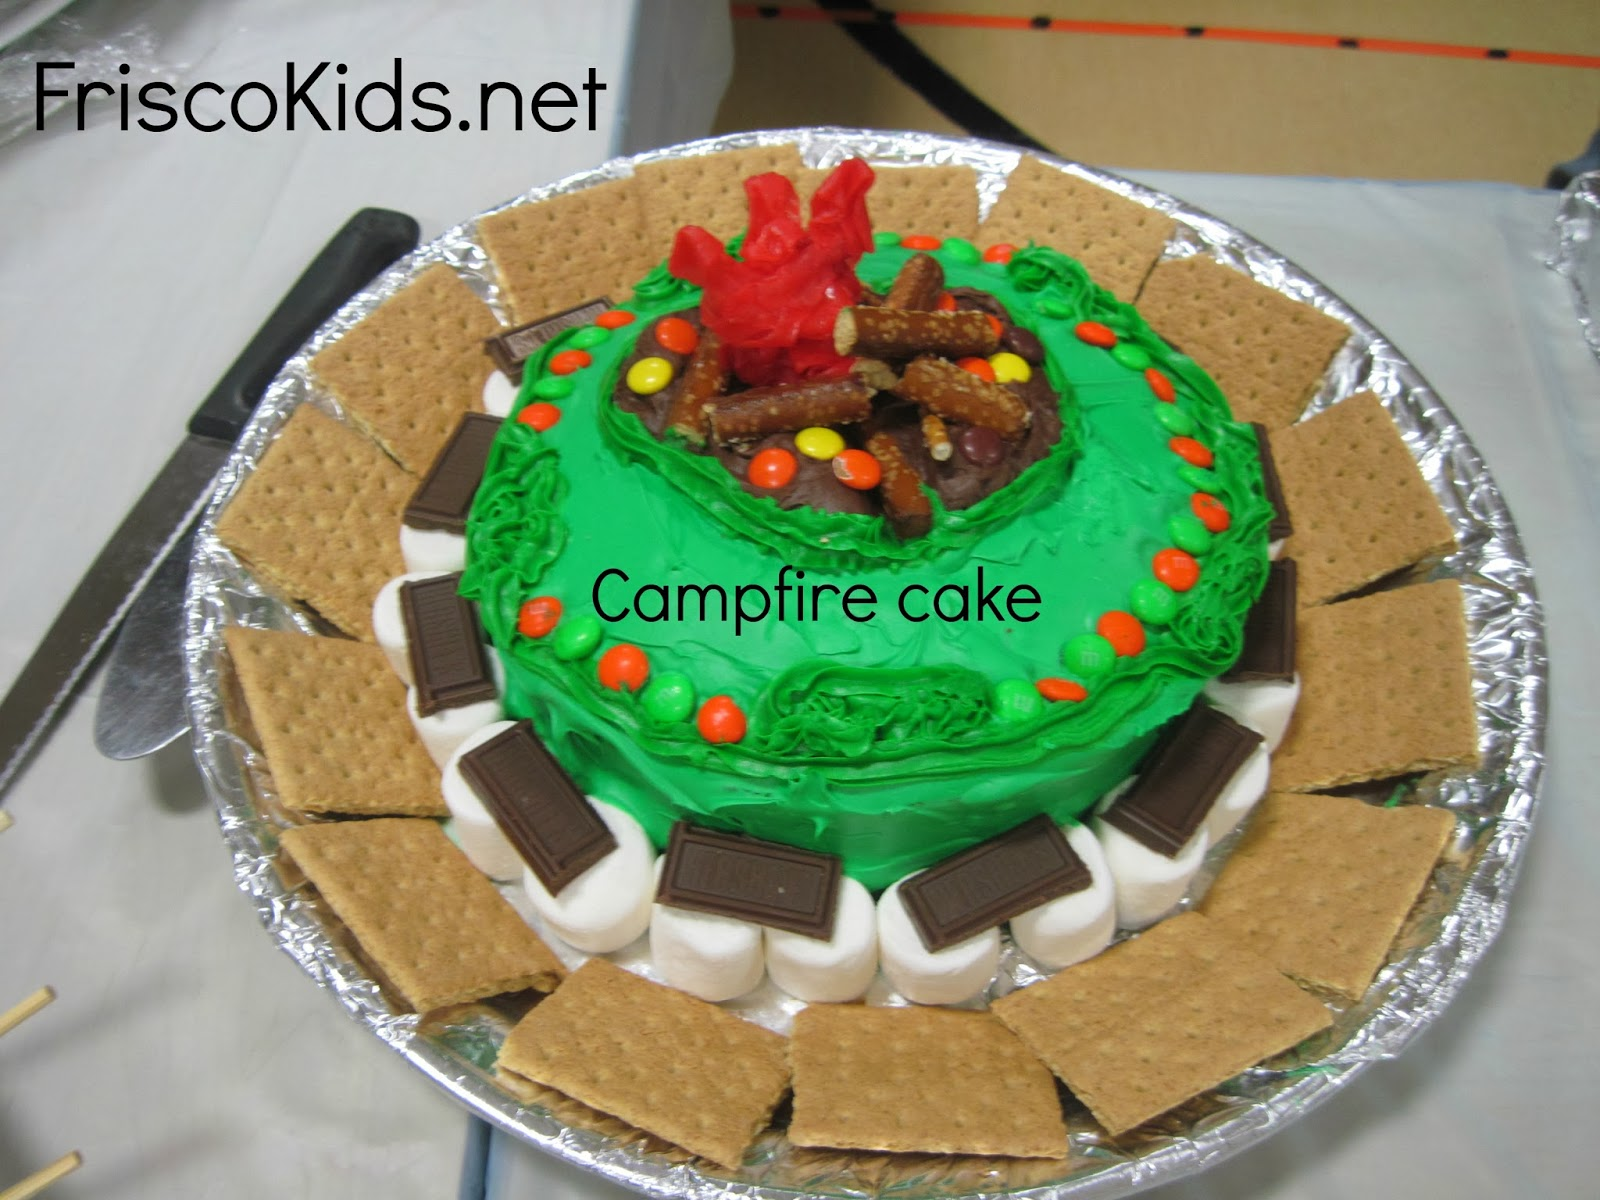 Here You Can See The Awesome Competition With Many Cakes Using A Campfire And Camping Theme I Think Were All Amazing